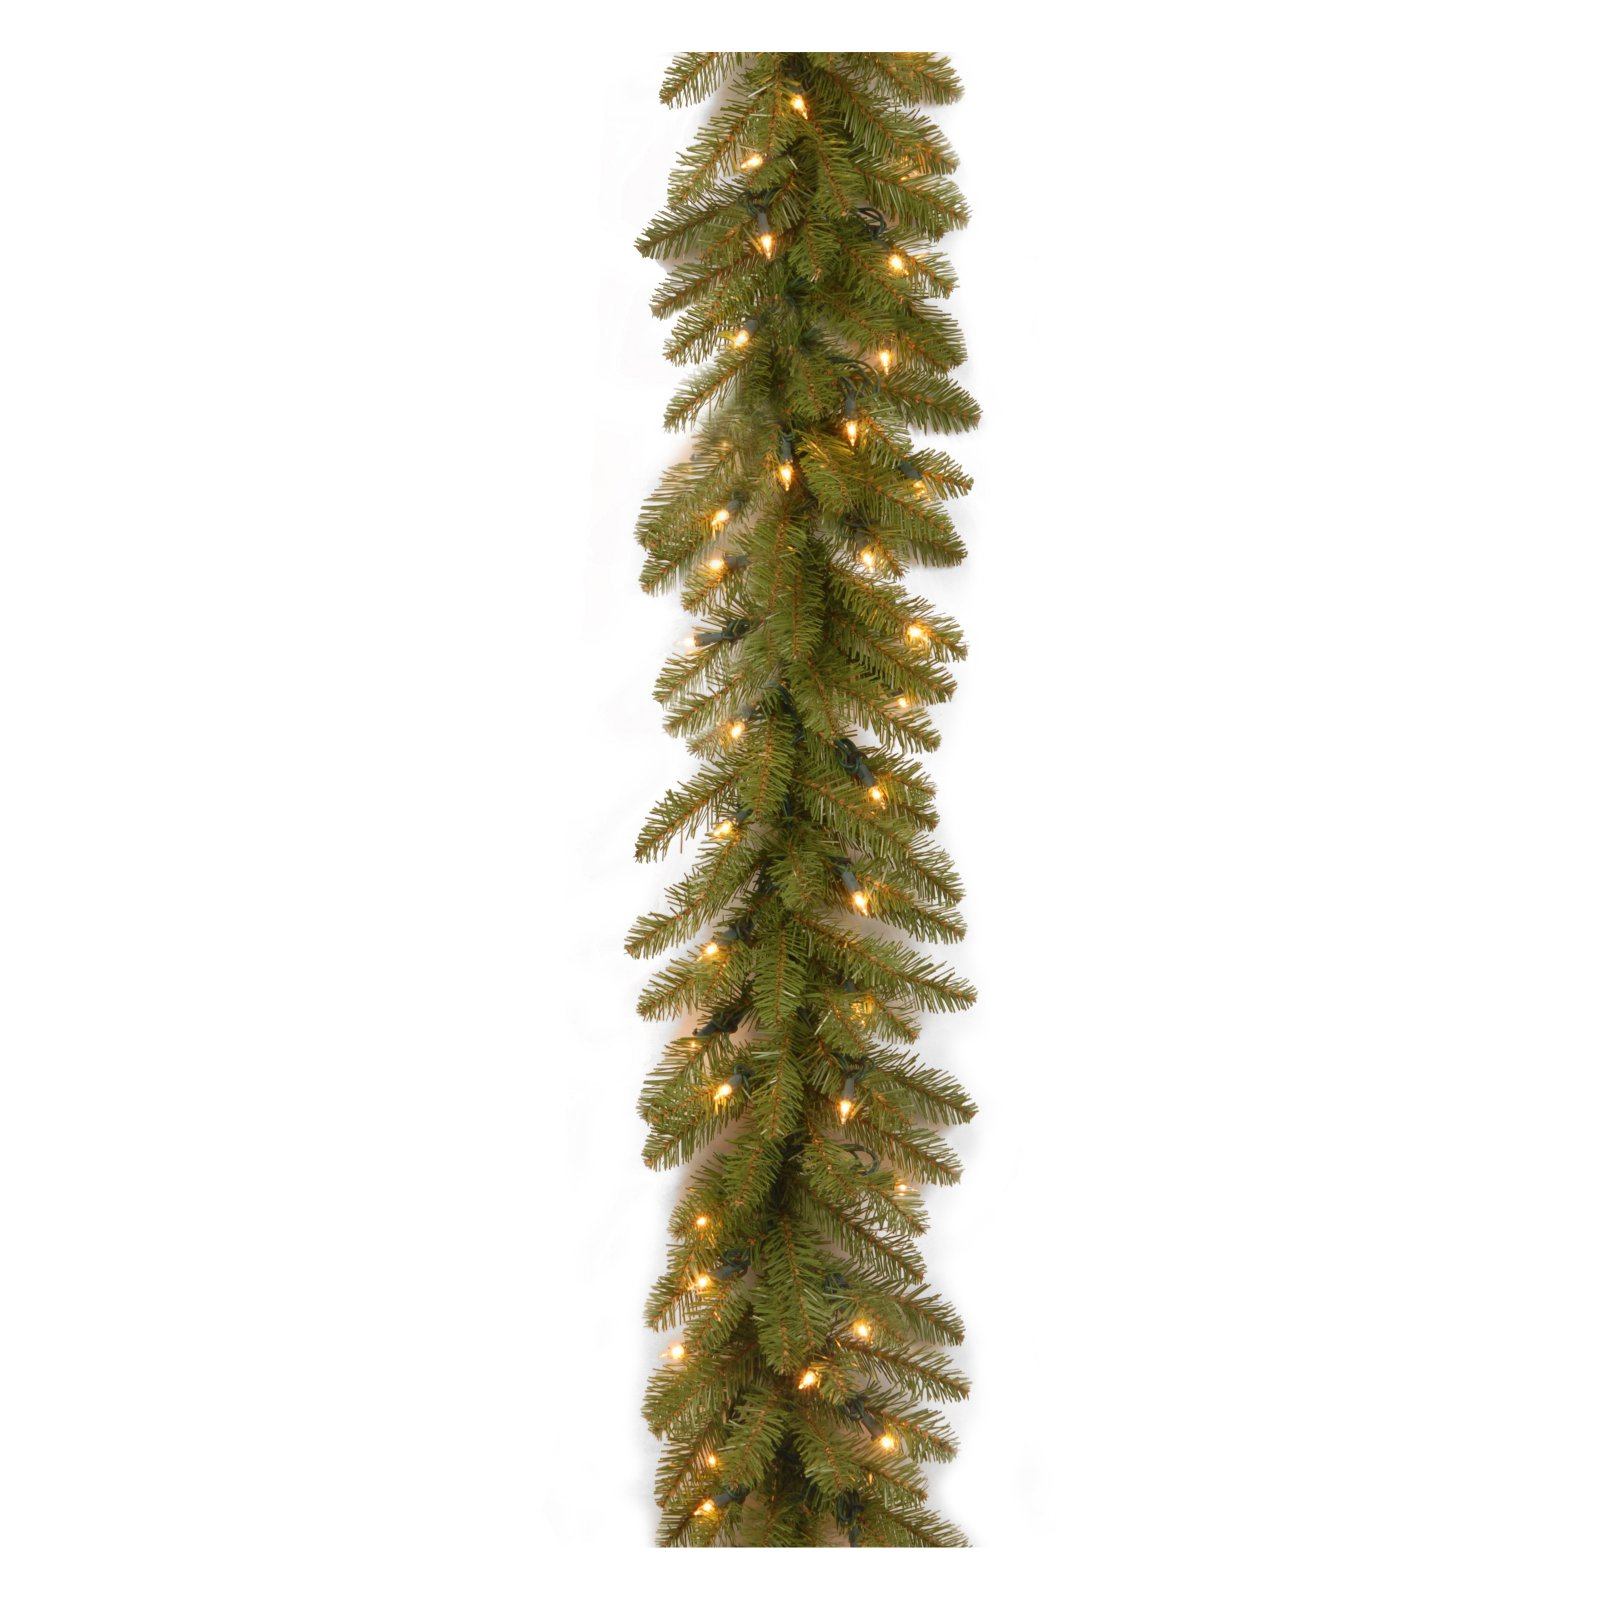 9' Dunhill Fir Garland with Clear Lights